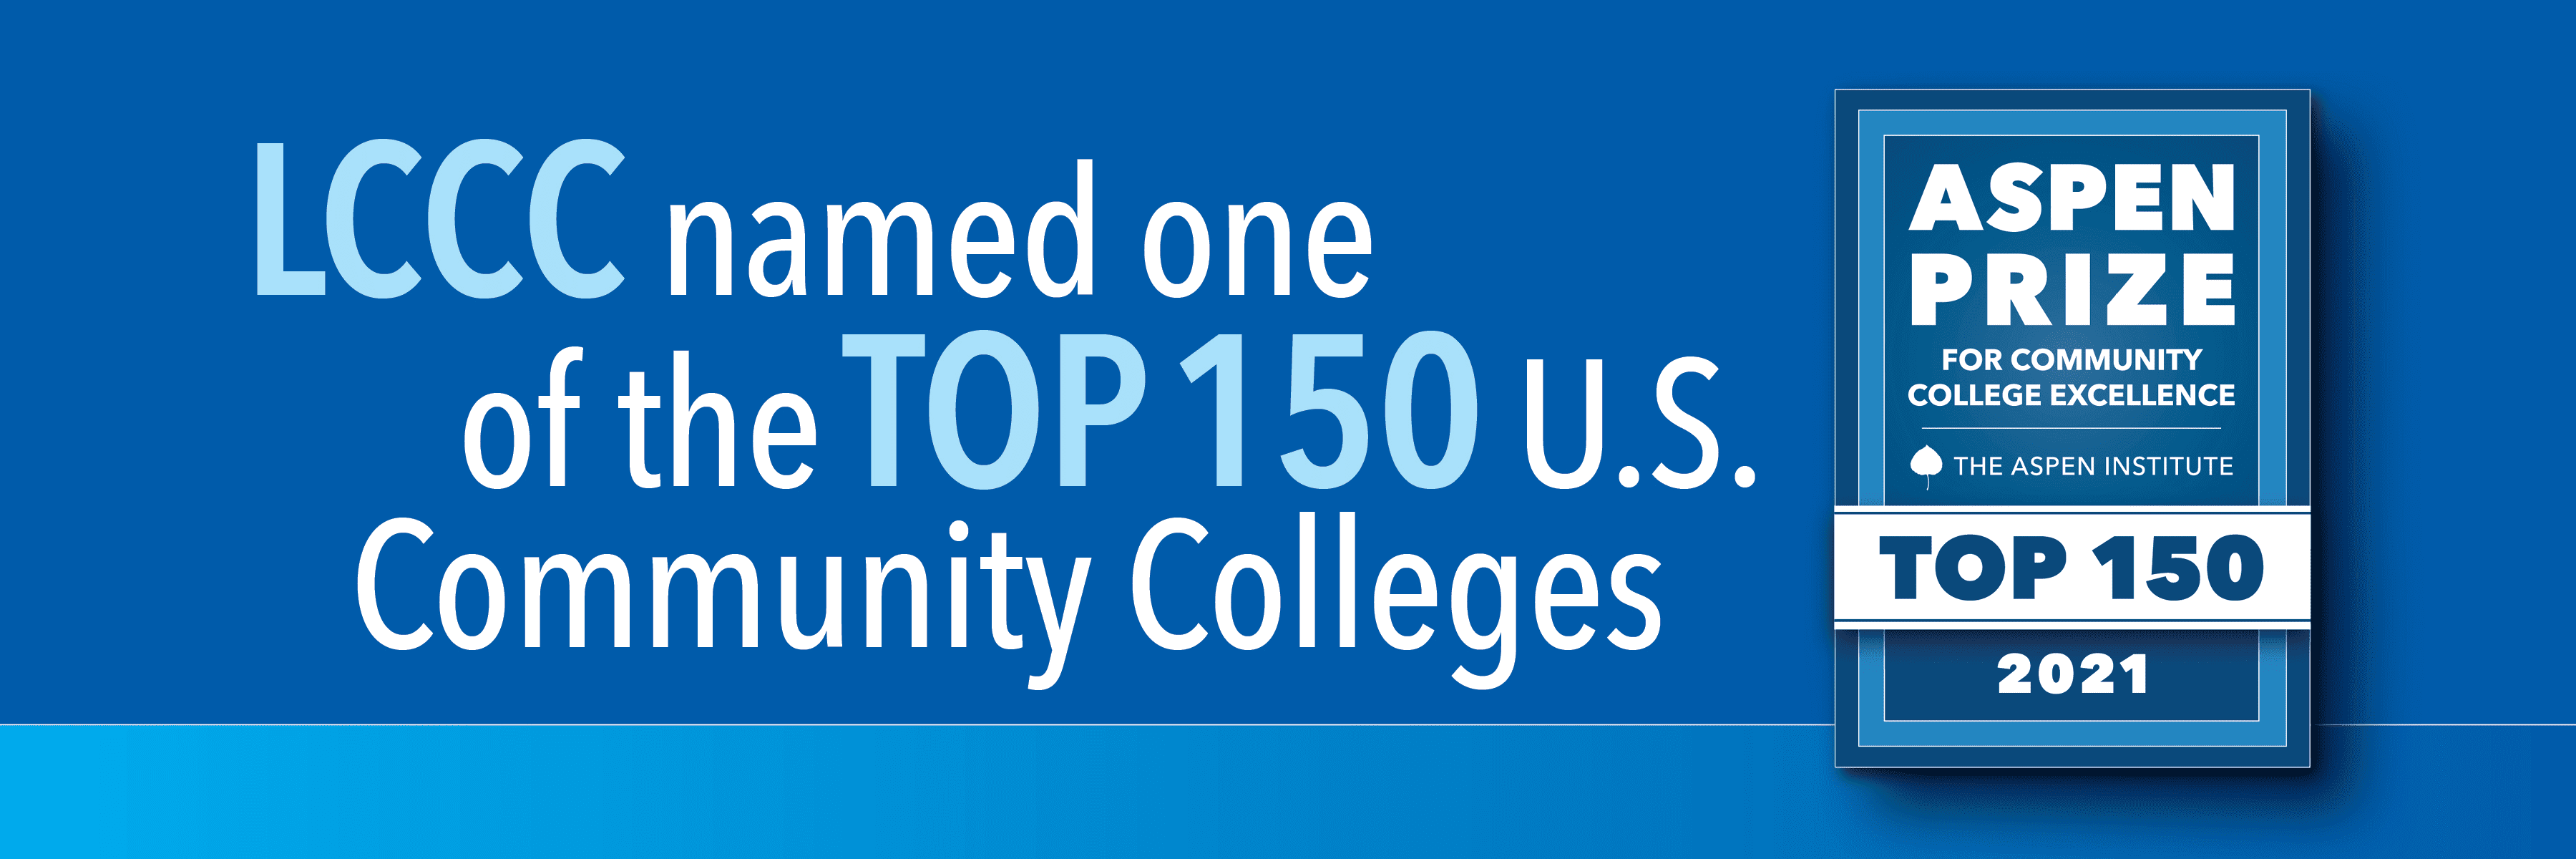 LCCC named one of the Top 150 U.S. Community Colleges by the Aspen Institute